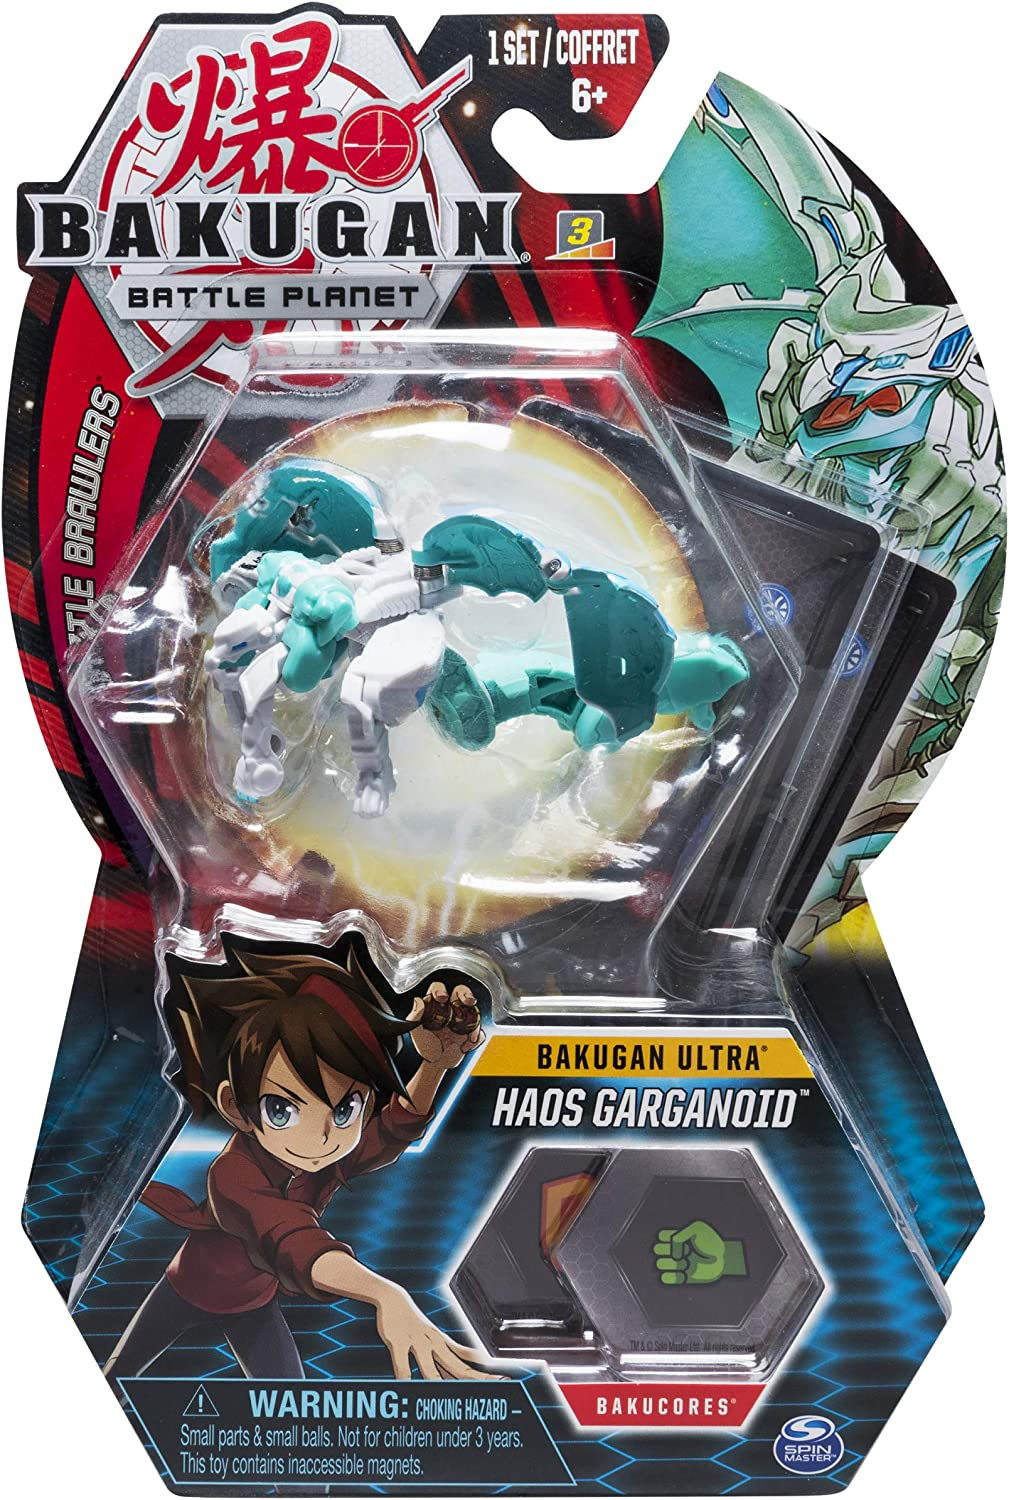 "Bakugan Ultra, Haos Garganoid, 3"" Tall Collectible Transforming Creature, For Ages 6 & Up"